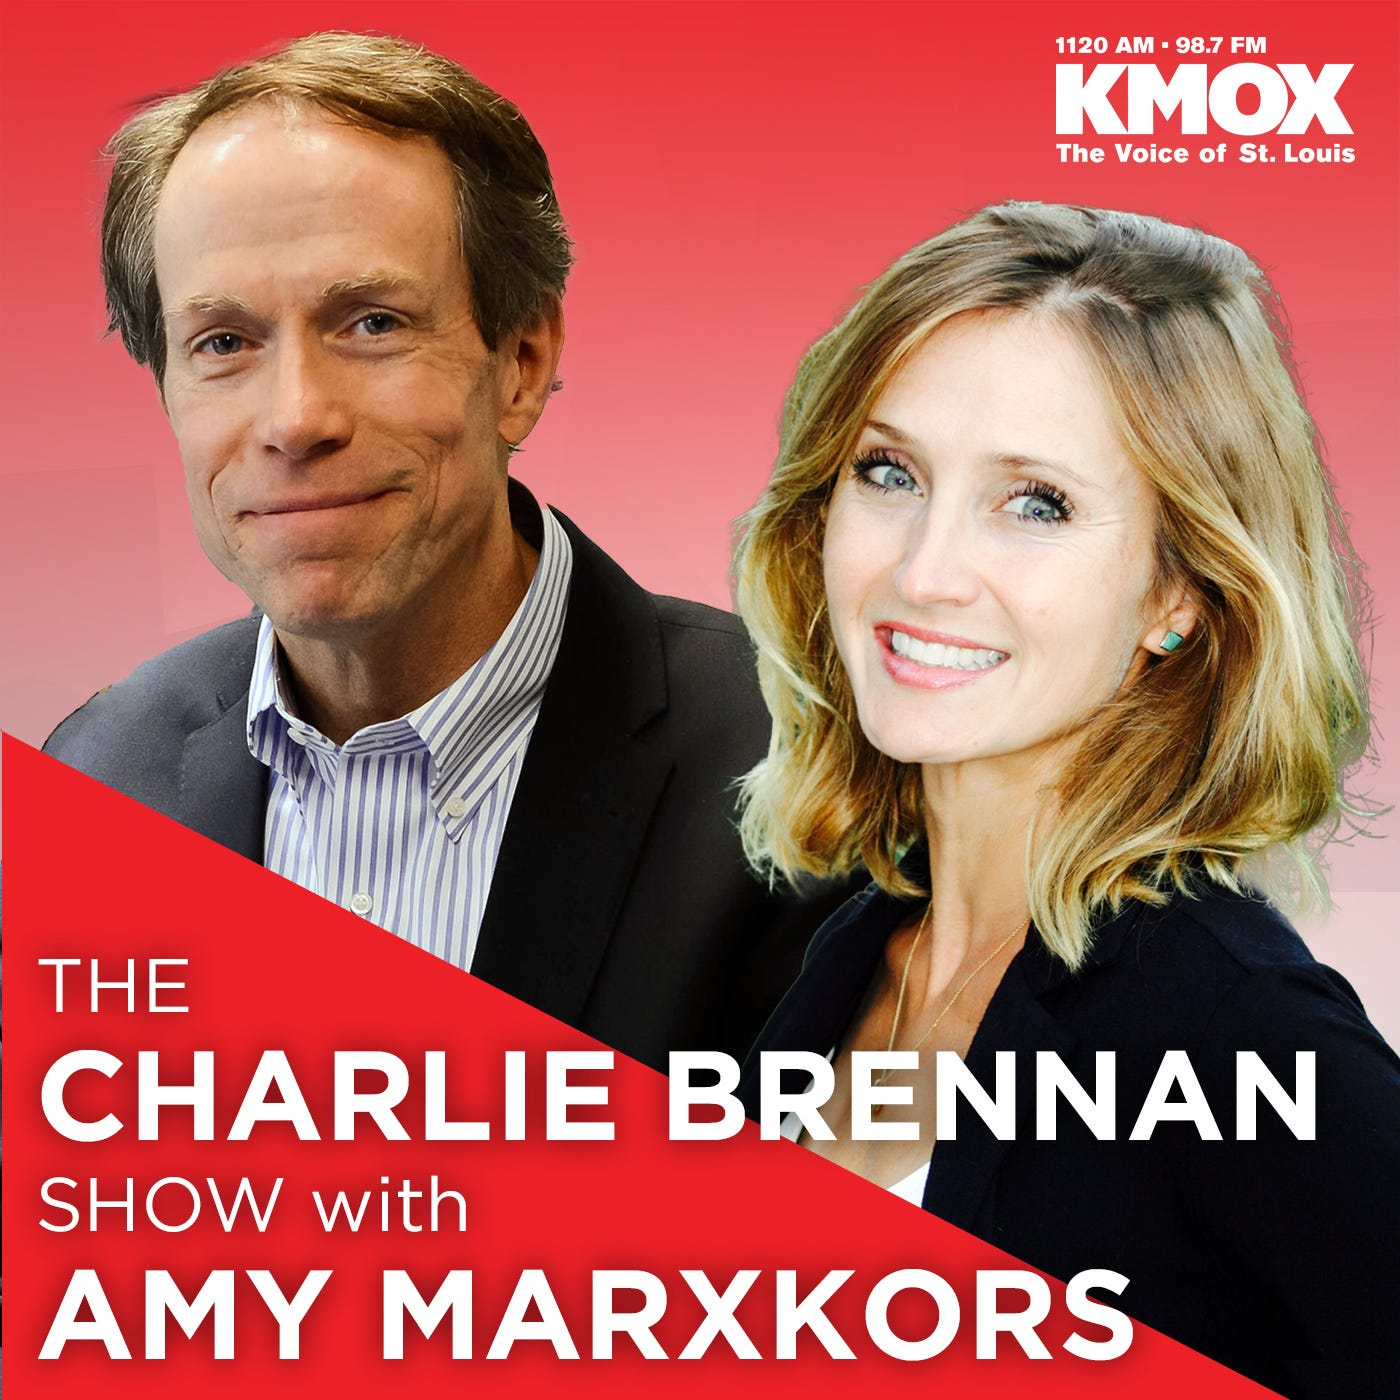 The Charlie Brennan Show with Amy Marxkors